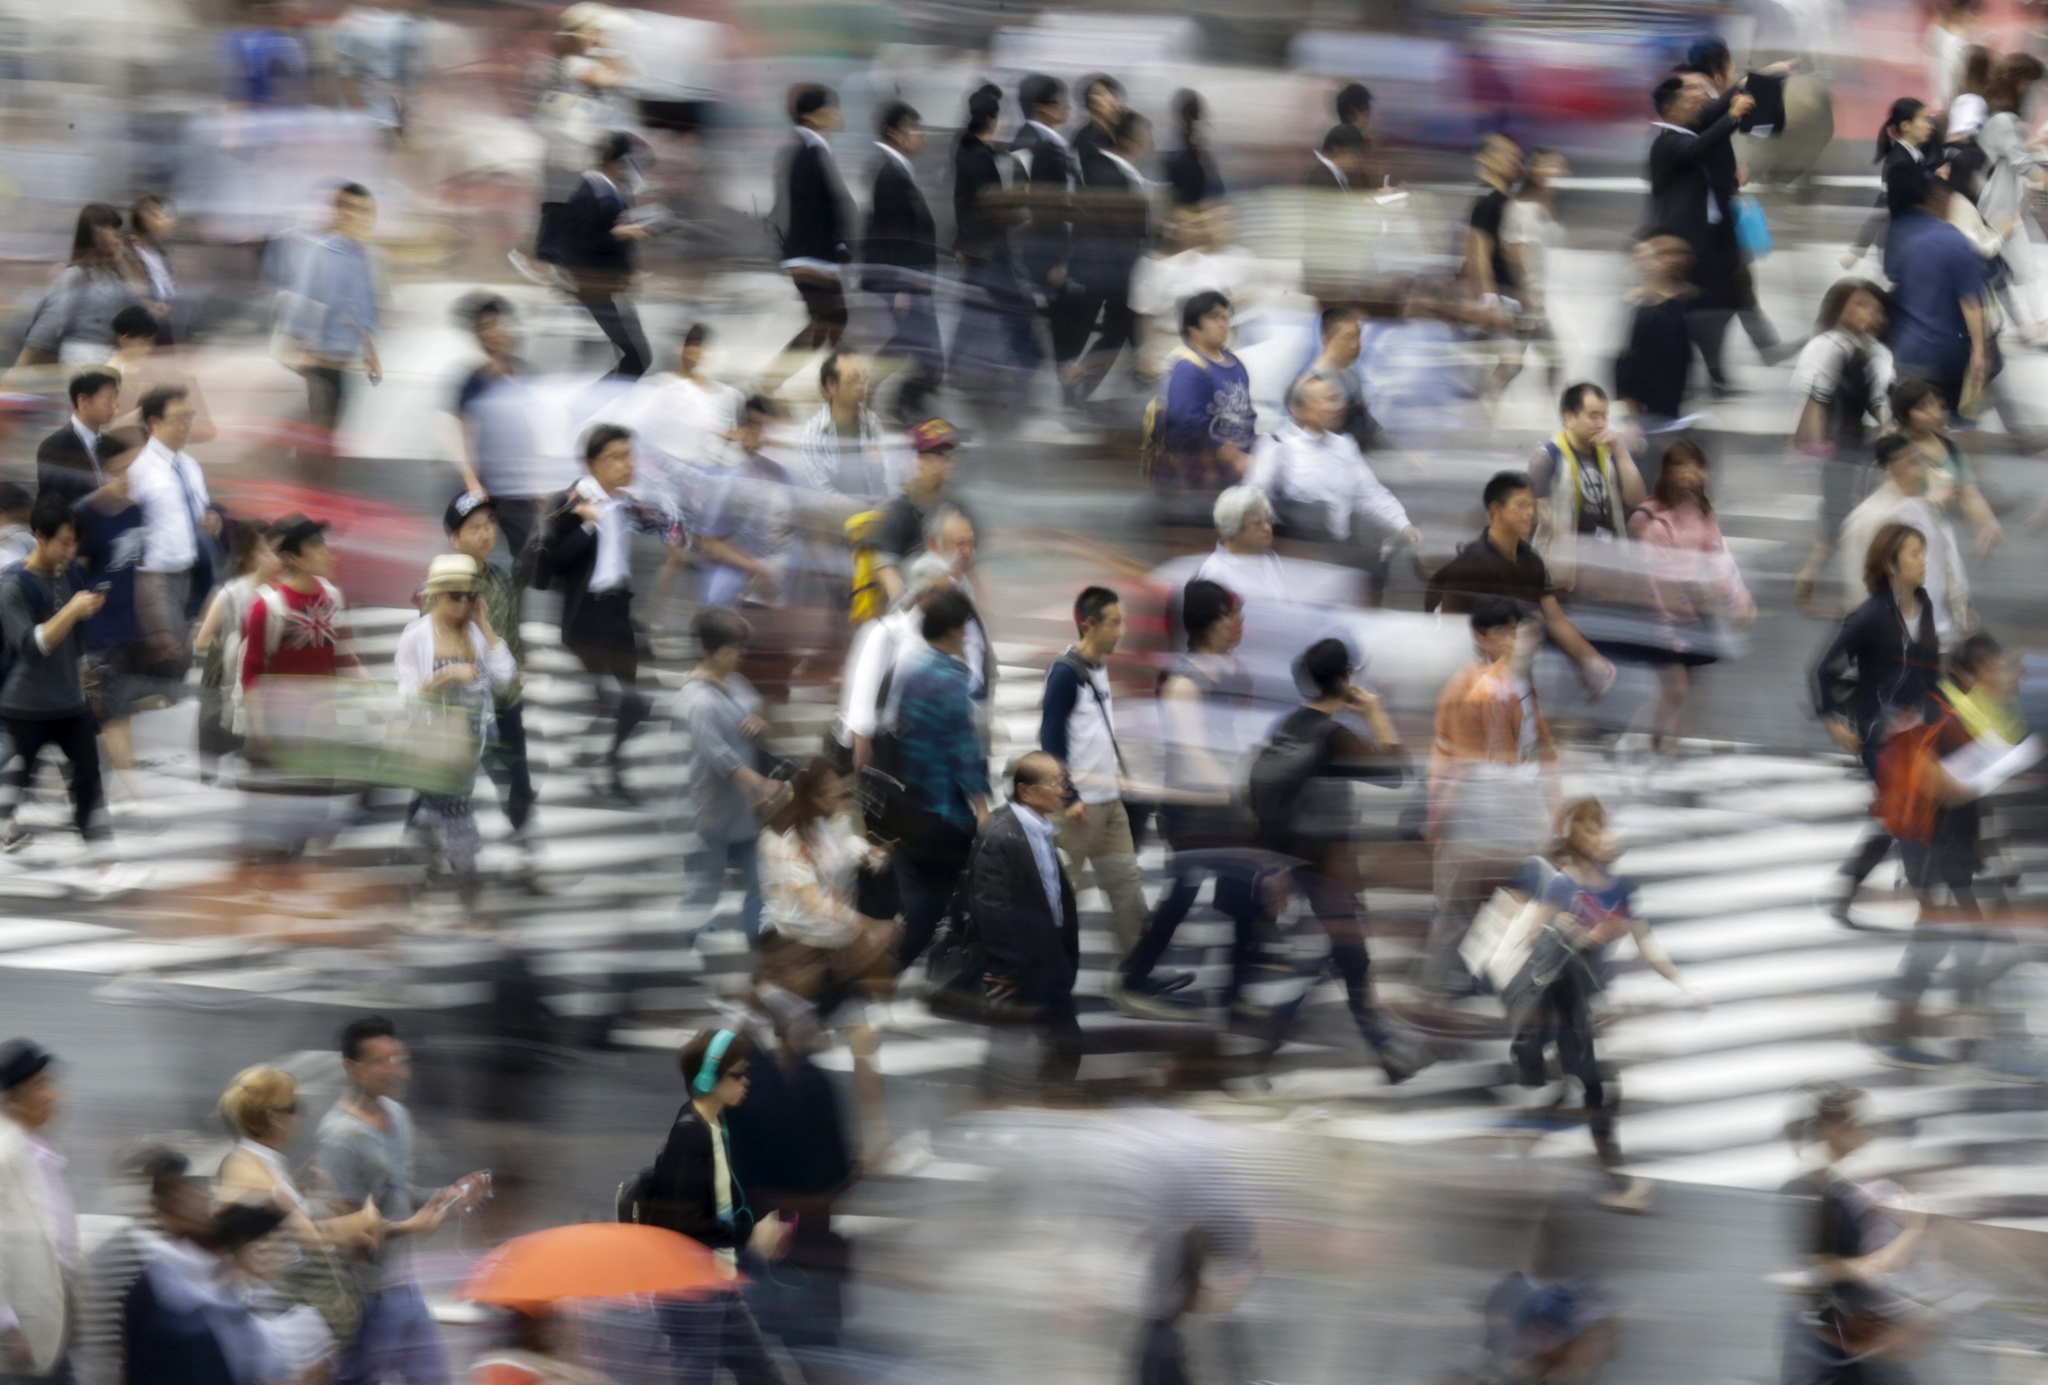 Japan's jobless rate down...epaselect epa04773238 A picture made available on 29 May 2015 shows pedestrians walking cross a crossway in Tokyo, Japan, 18 May 2015. Japan's job availability improved in April to its best level in about 23 years while the unemployment rate fell to lowest level in 18 years, the Ministry of Health, Labor and Welfare said on 29 May 2015. Japan's unemployment rate fell to 3.3 percent in April for the third straight month of decline, the government said Friday. The rate had stood at 3.4 percent in March. Medical and welfare services added 300,000 jobs to employ a total of 7.82 million, and the information and communication industry saw an increase of 150,000 employees to 2.09 million, the Ministry of Internal Affairs and Communications said. Meanwhile, the Ministry of Health, Labour and Welfare said the availability of jobs - measured as the ratio of job offers per job seeker - climbed to 1.17 in April from 1.15 in March.  EPA/KIMIMASA MAYAMA